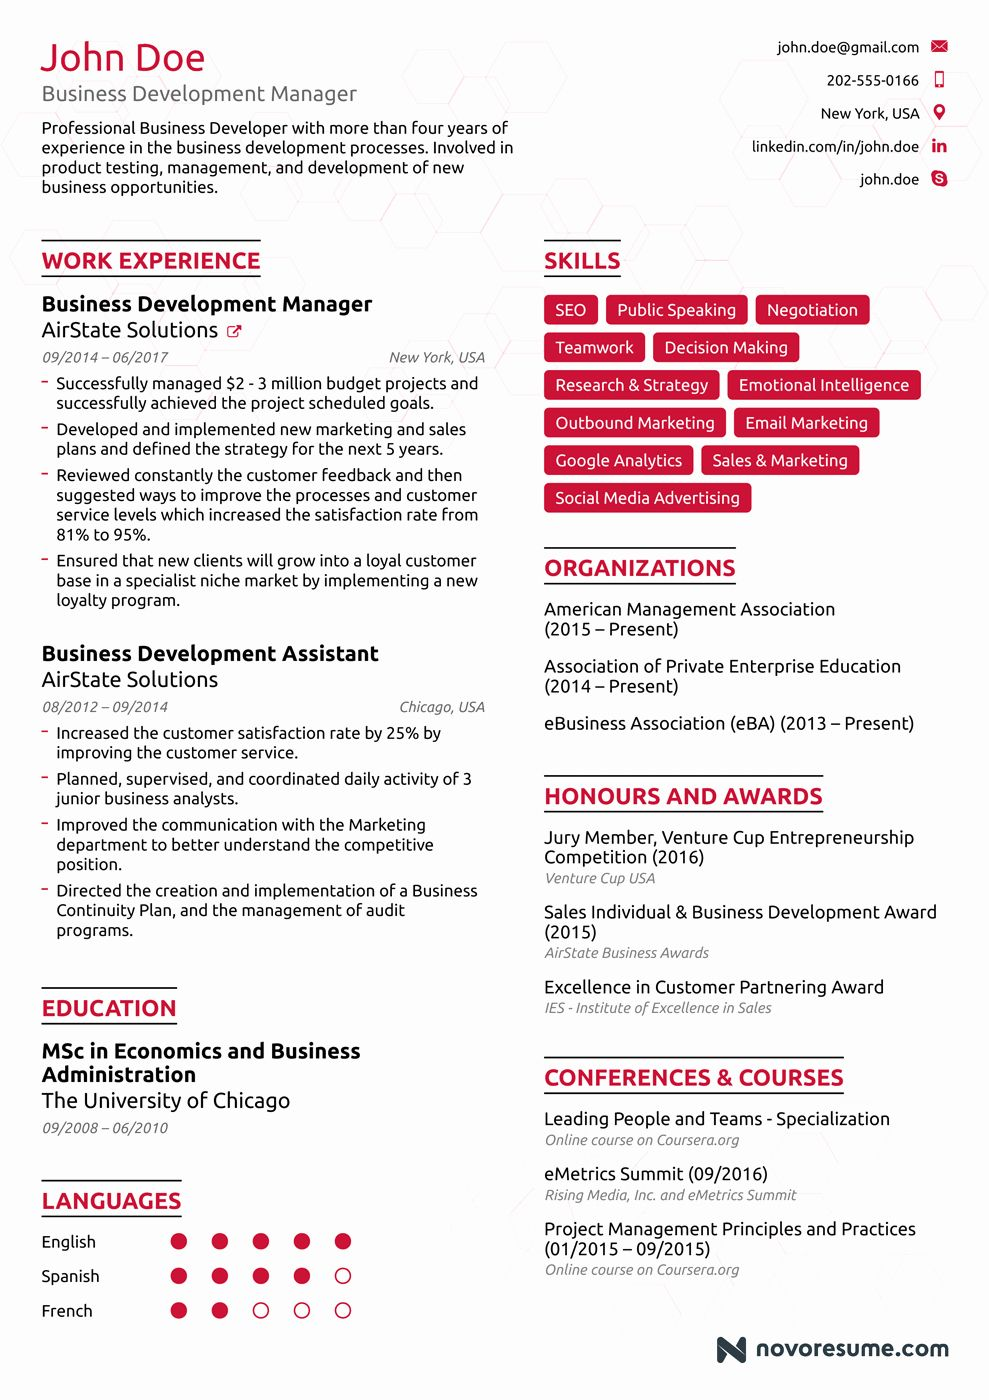 Professional Headline Resume Examples Fresh 40